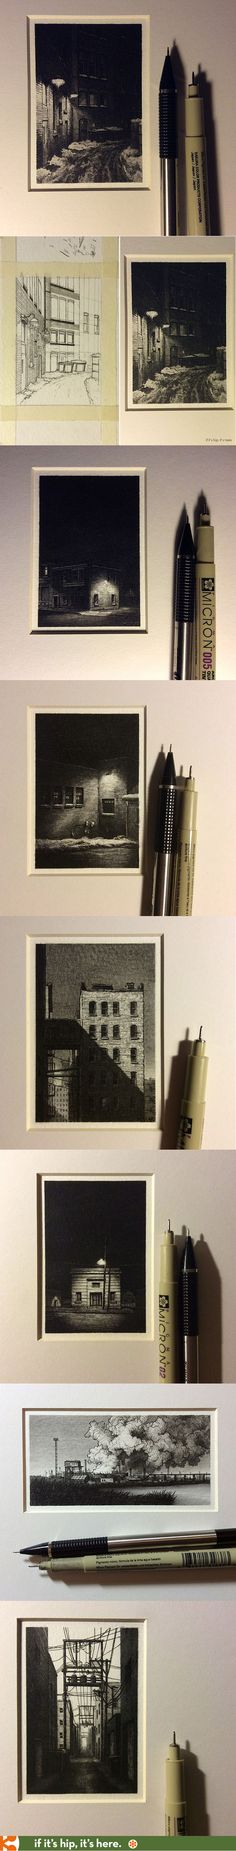 Incredibly detailed micro ink drawings by Taylor Mazer | http://www.ifitshipitshere.com/micro-pen-ink-drawings-taylor-mazer/